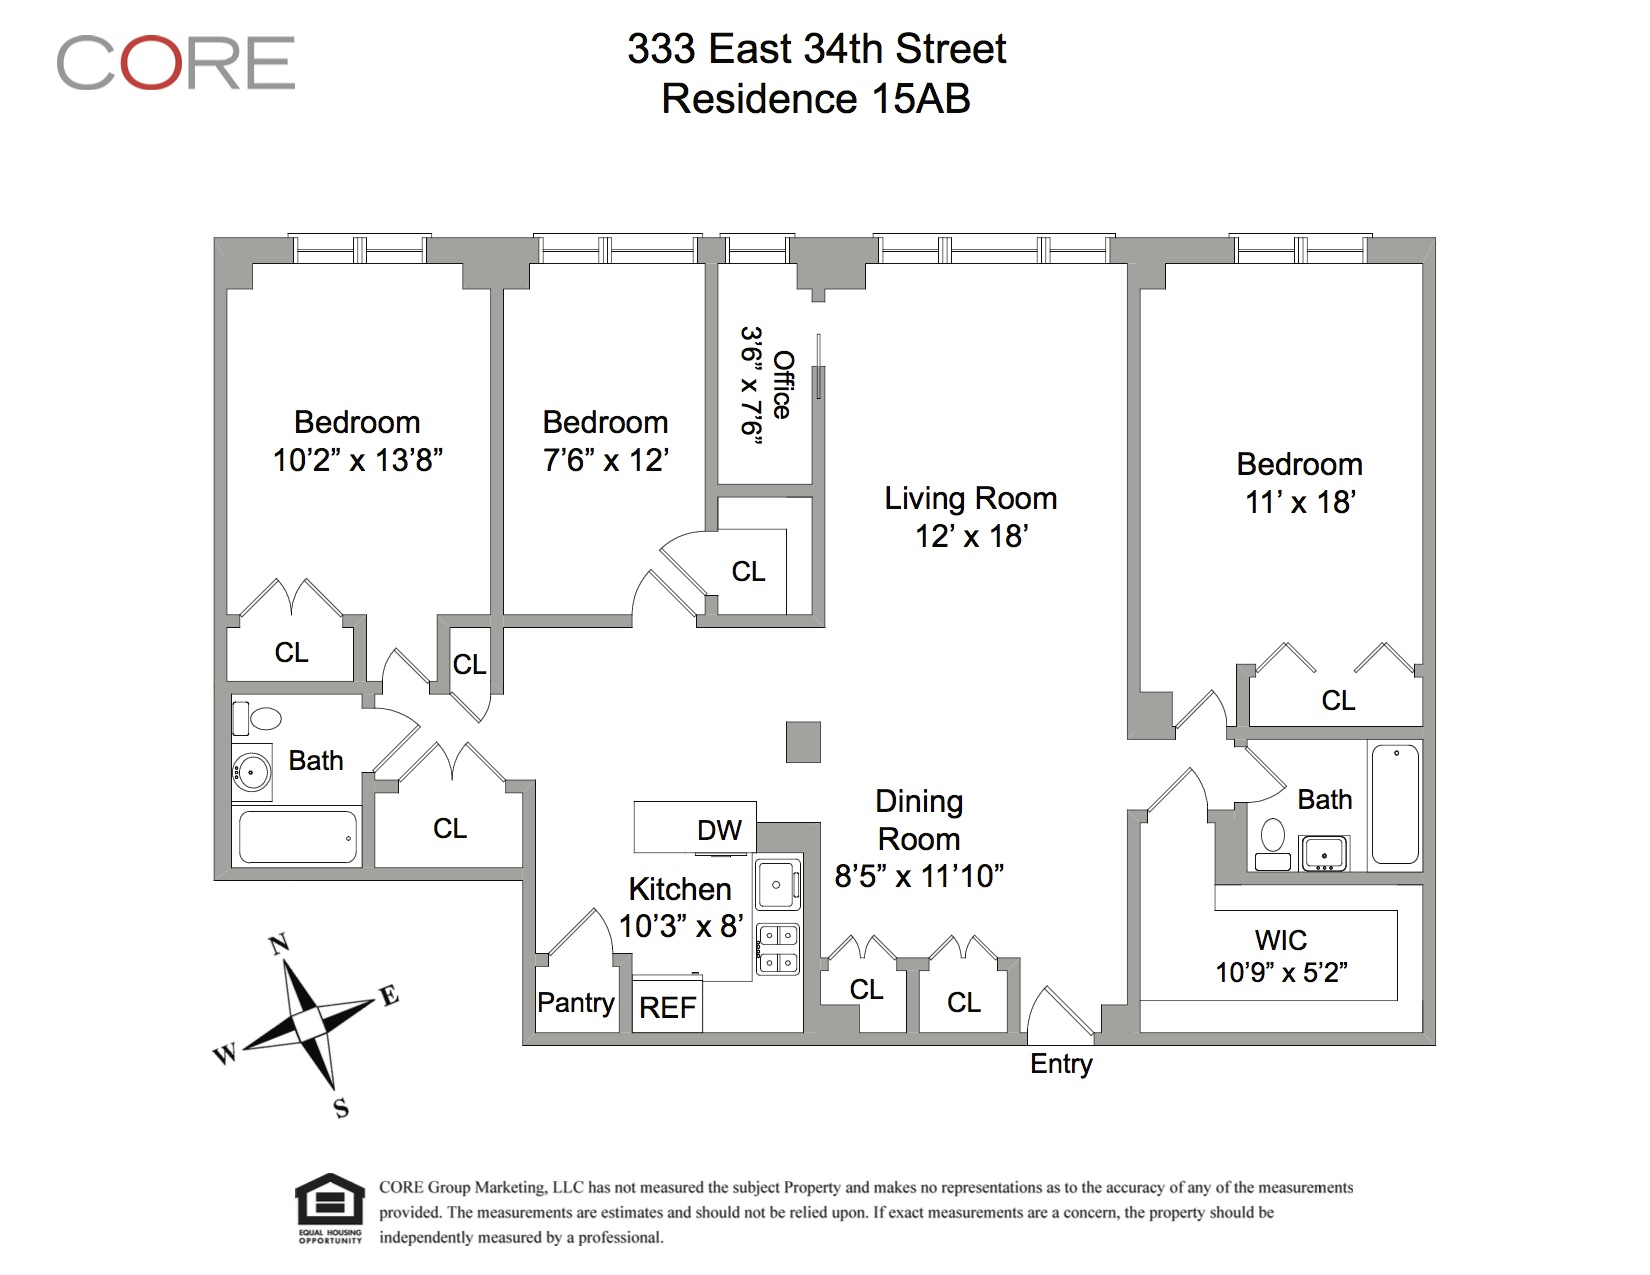 floor plan-333 East 34th Street, Unit 15AB